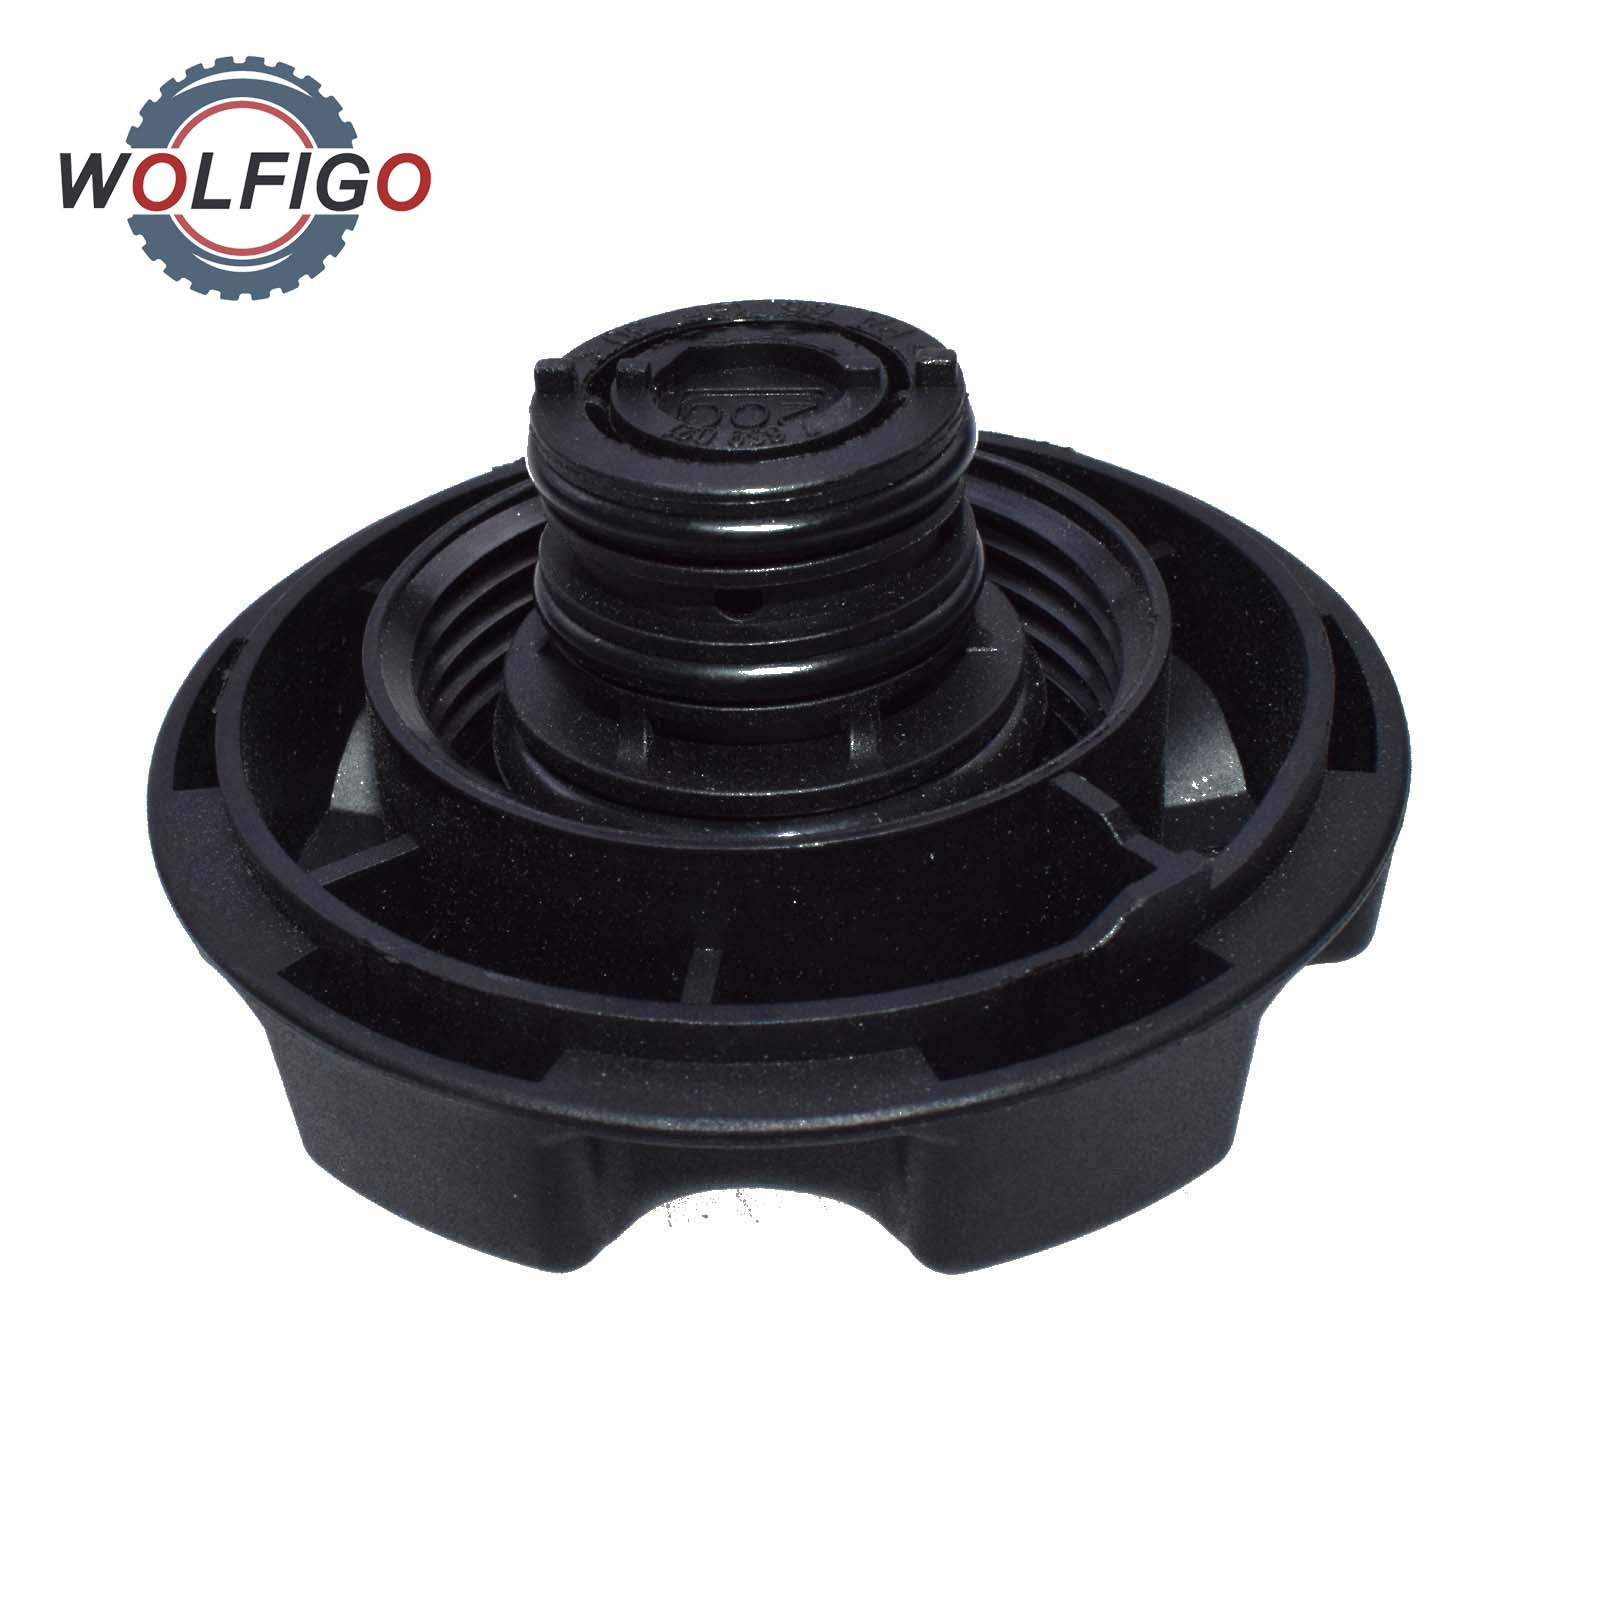 New Genuine Engine Coolant Reservoir Cap 17117521071 for BMW